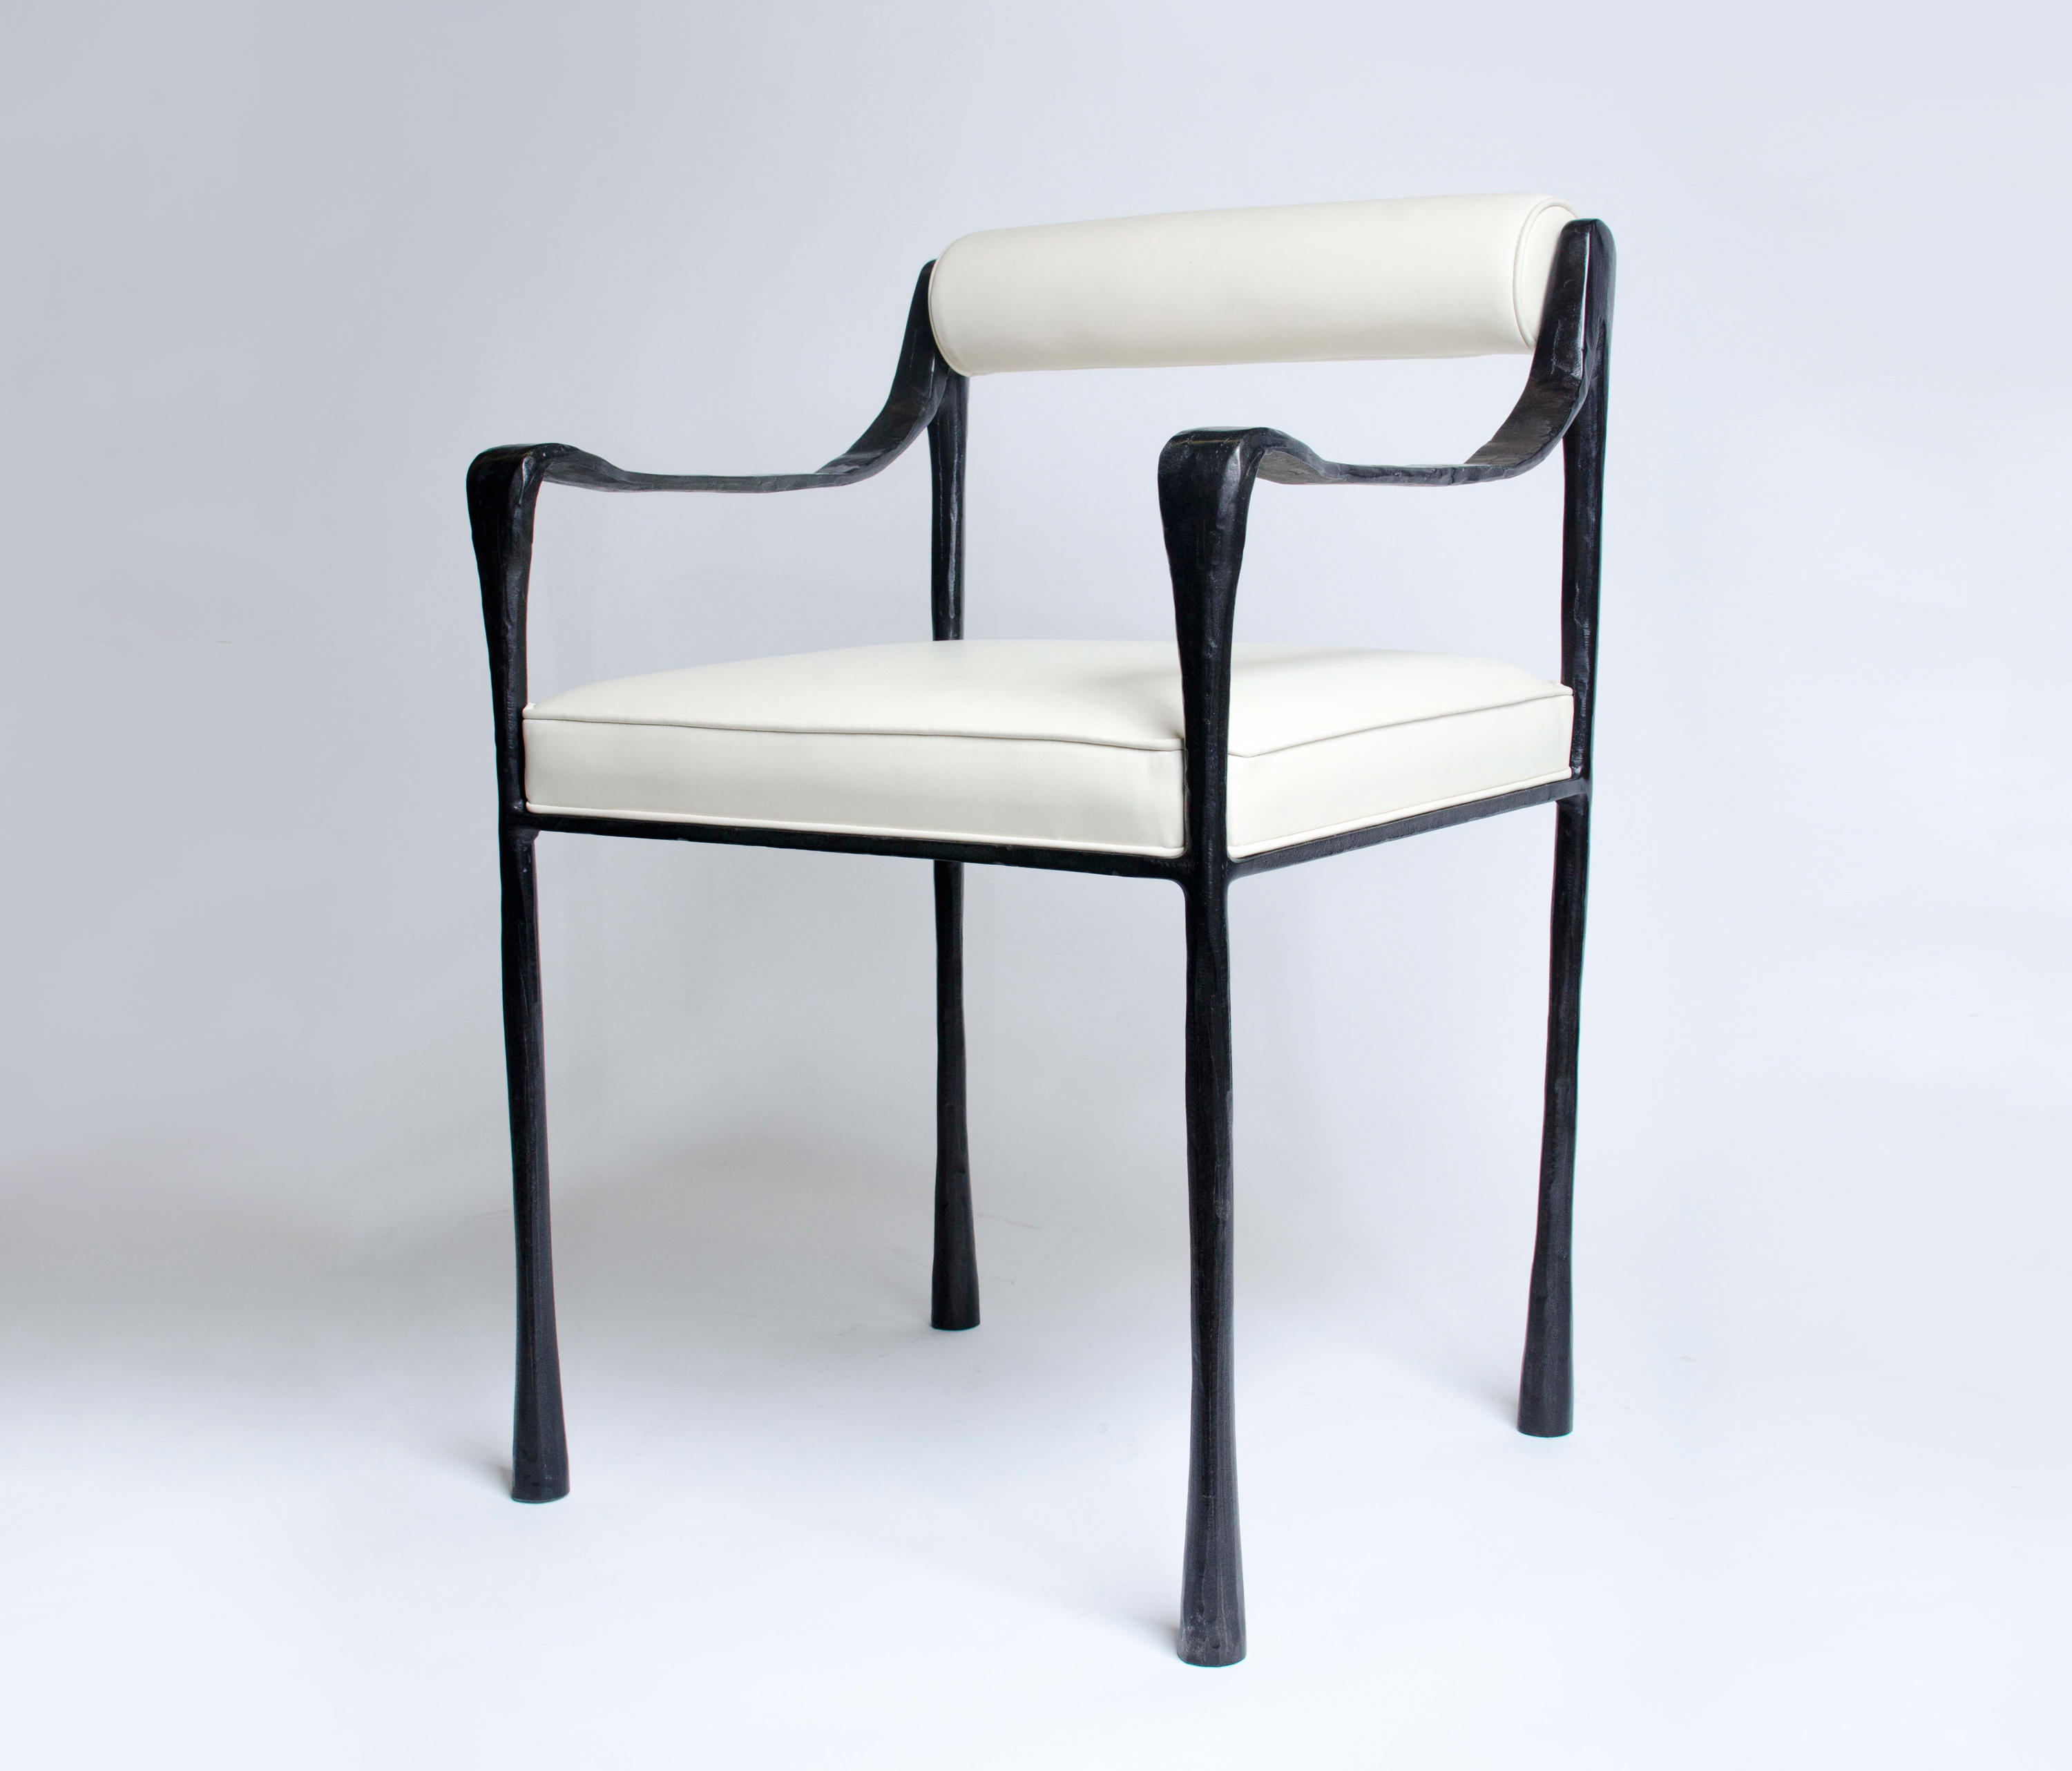 Giac Chair Flat Back Chairs From Dlv Designs Architonic